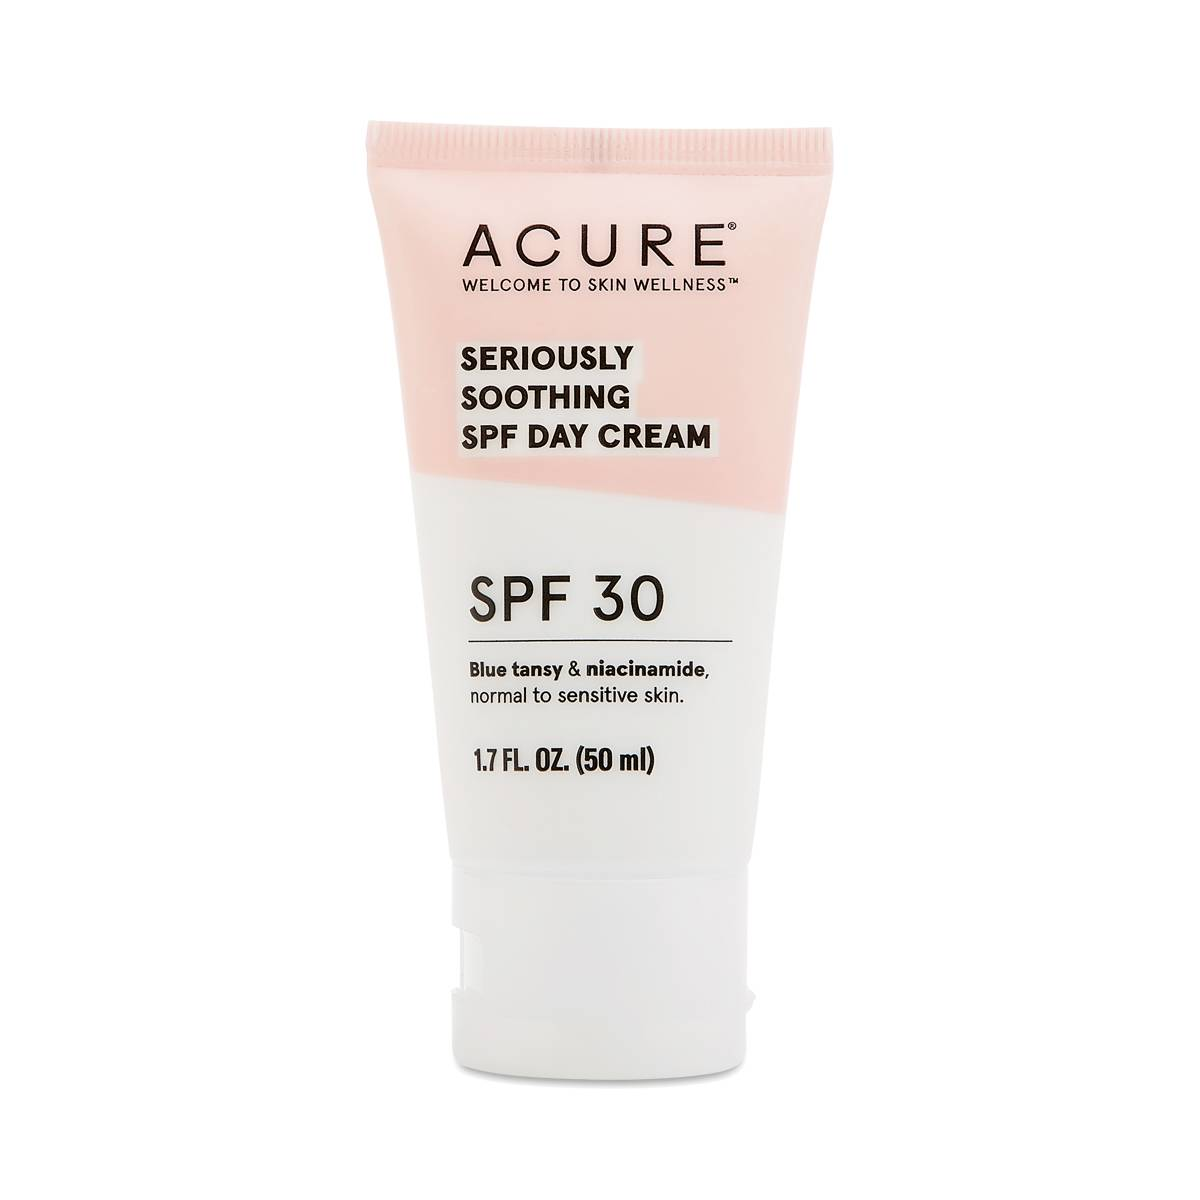 ACURE Seriously Soothing Day Cream SPF 30